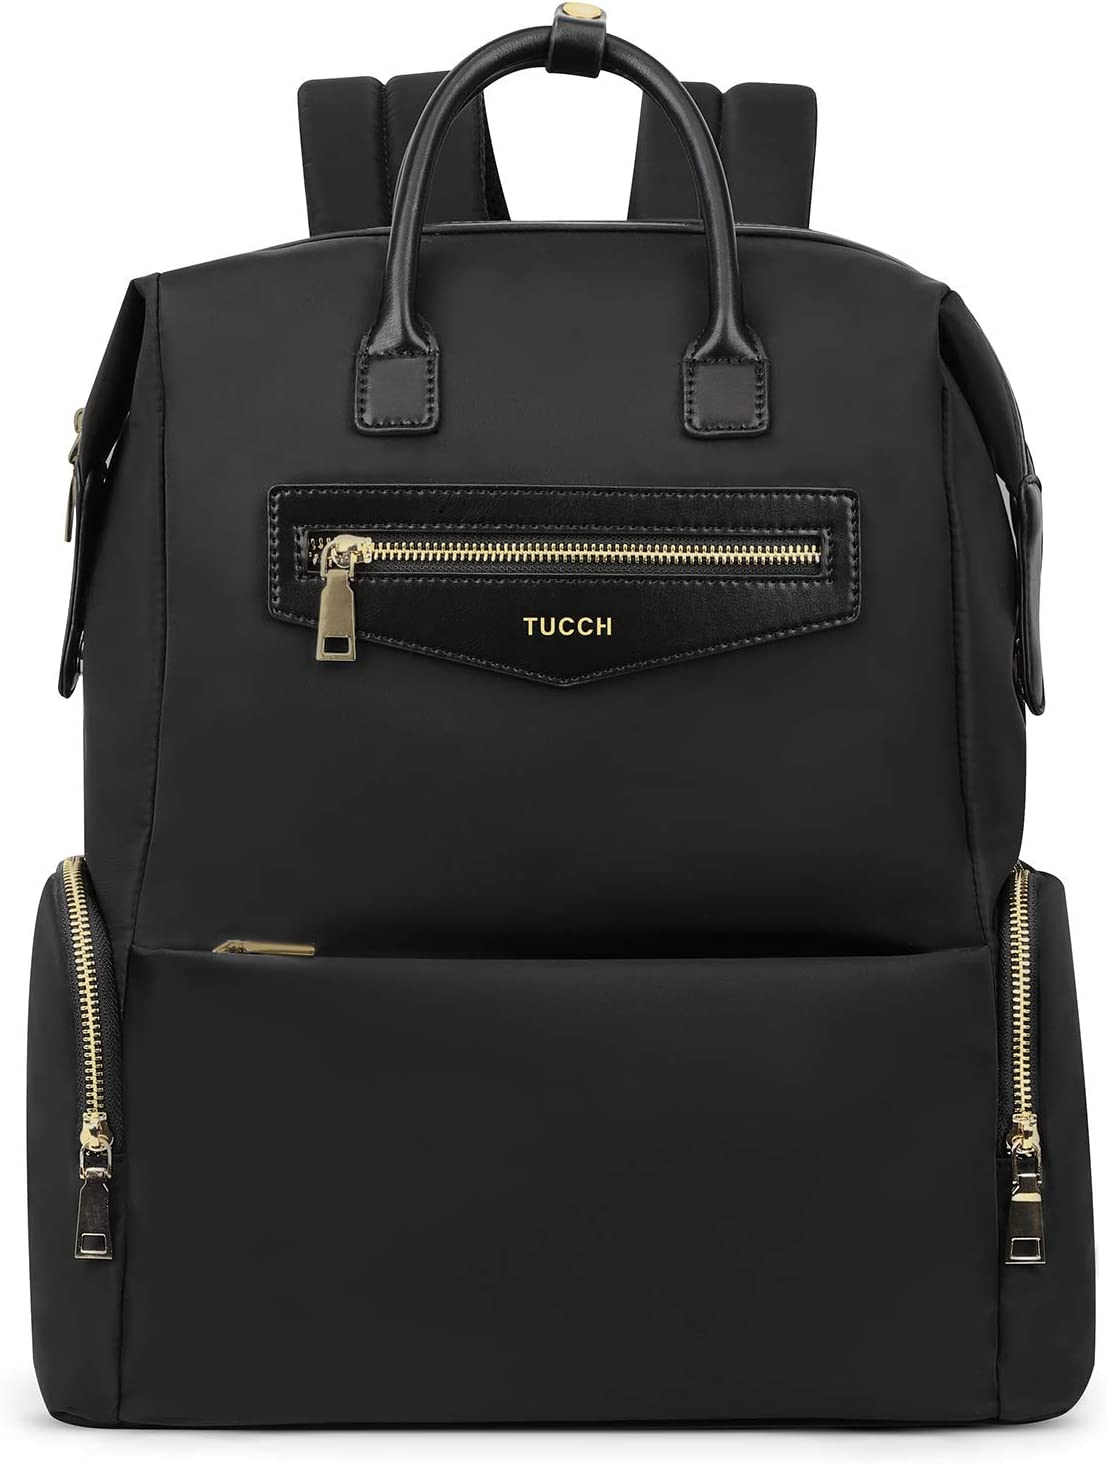 TUCCH Women Laptop Backpack, 14 Inch Business Travel College School Backpack with Luggage Belt, Foldable Lightweight Water Resistant Nylon Casual Daypack Computer Rucksack for Girls 19L, Classic Black